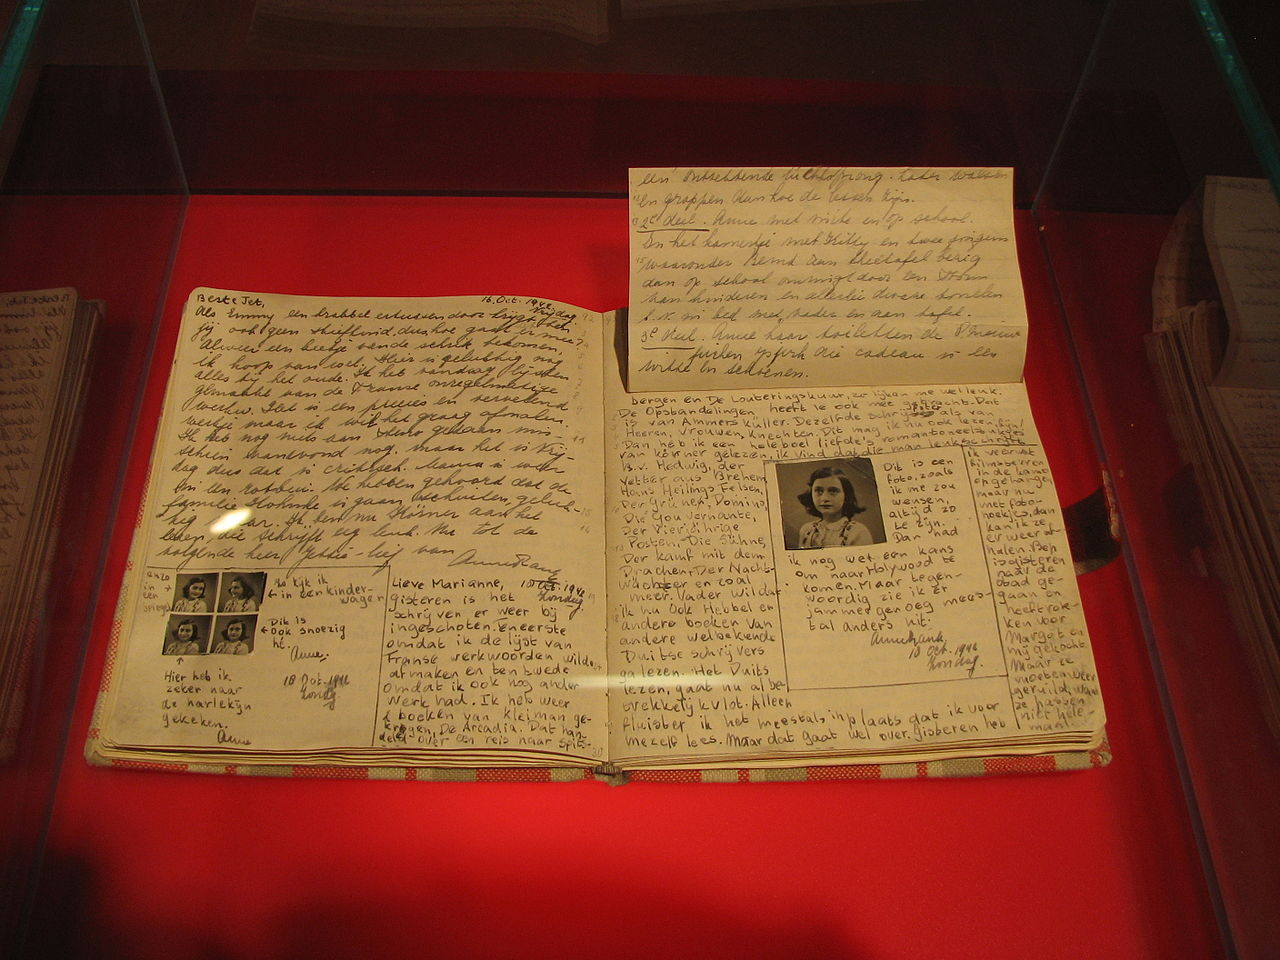 Anne_Frank_Diary_at_Anne_Frank_Museum_in_Berlin-pages-92-93